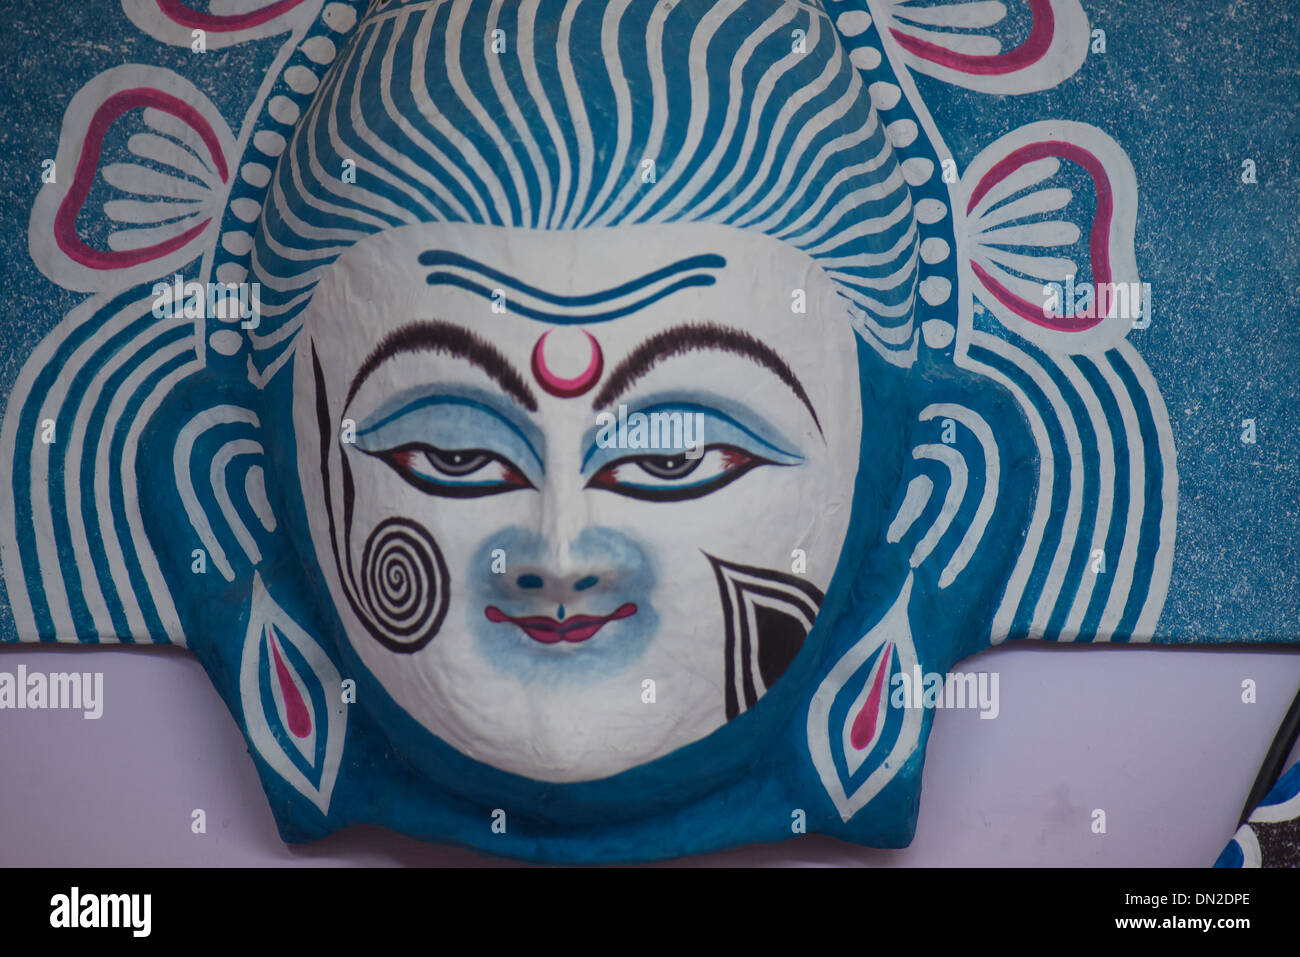 Handicraft of paper mask of Lord Shiva in colors of white and black,blue, indicating benign grace of the God. - Stock Image